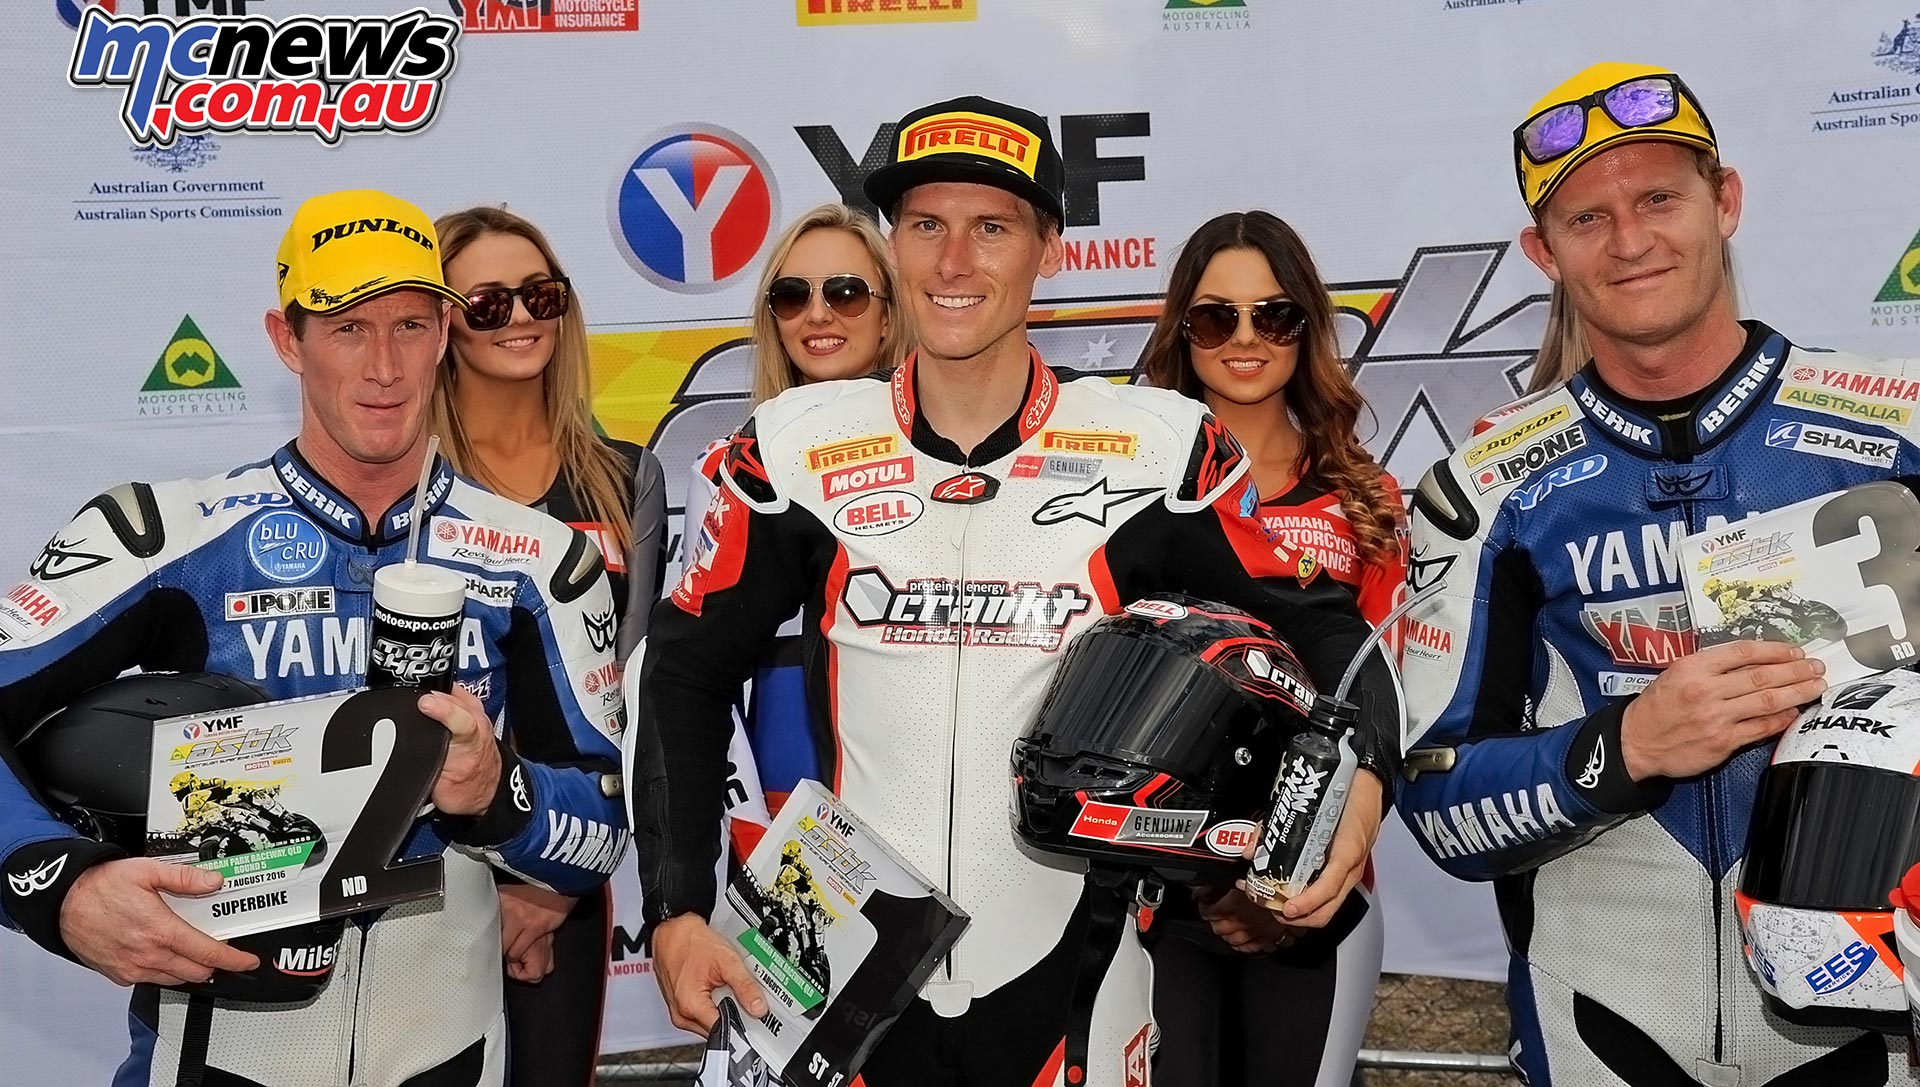 ASBK 2016 -Morgan Park - Superbike Race Two - Image by Keith Muir - Round Podium - Troy Herfoss 1st - Wayne Maxwell 2nd - Glenn Allerton 3rd